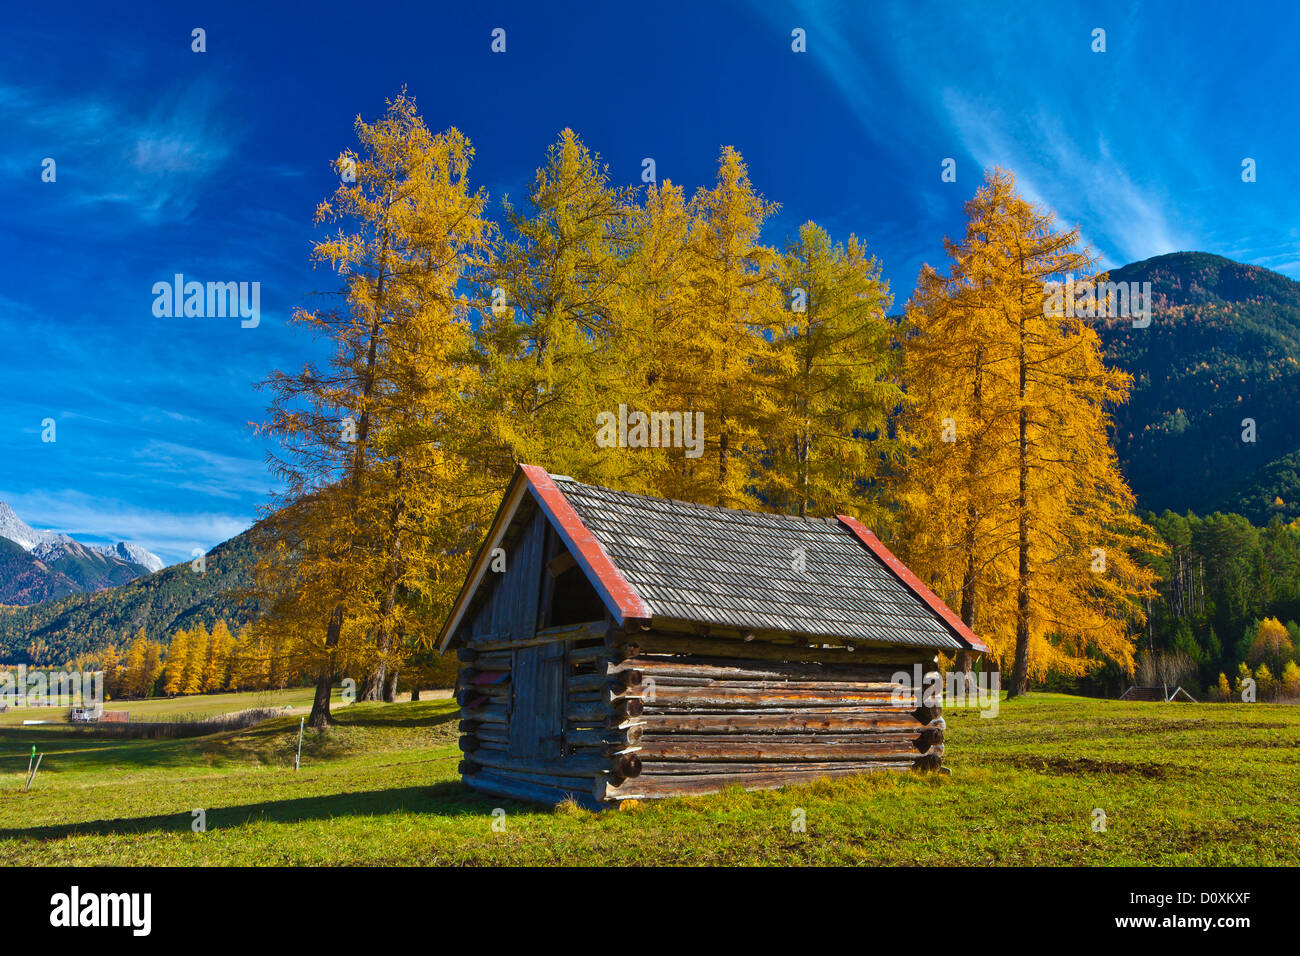 Austria, Europe, Gurgltal, Nassereith, Stadel, larches, meadow, Cirren, sky, blue, Yellow, wood, forest, nature, Stock Photo